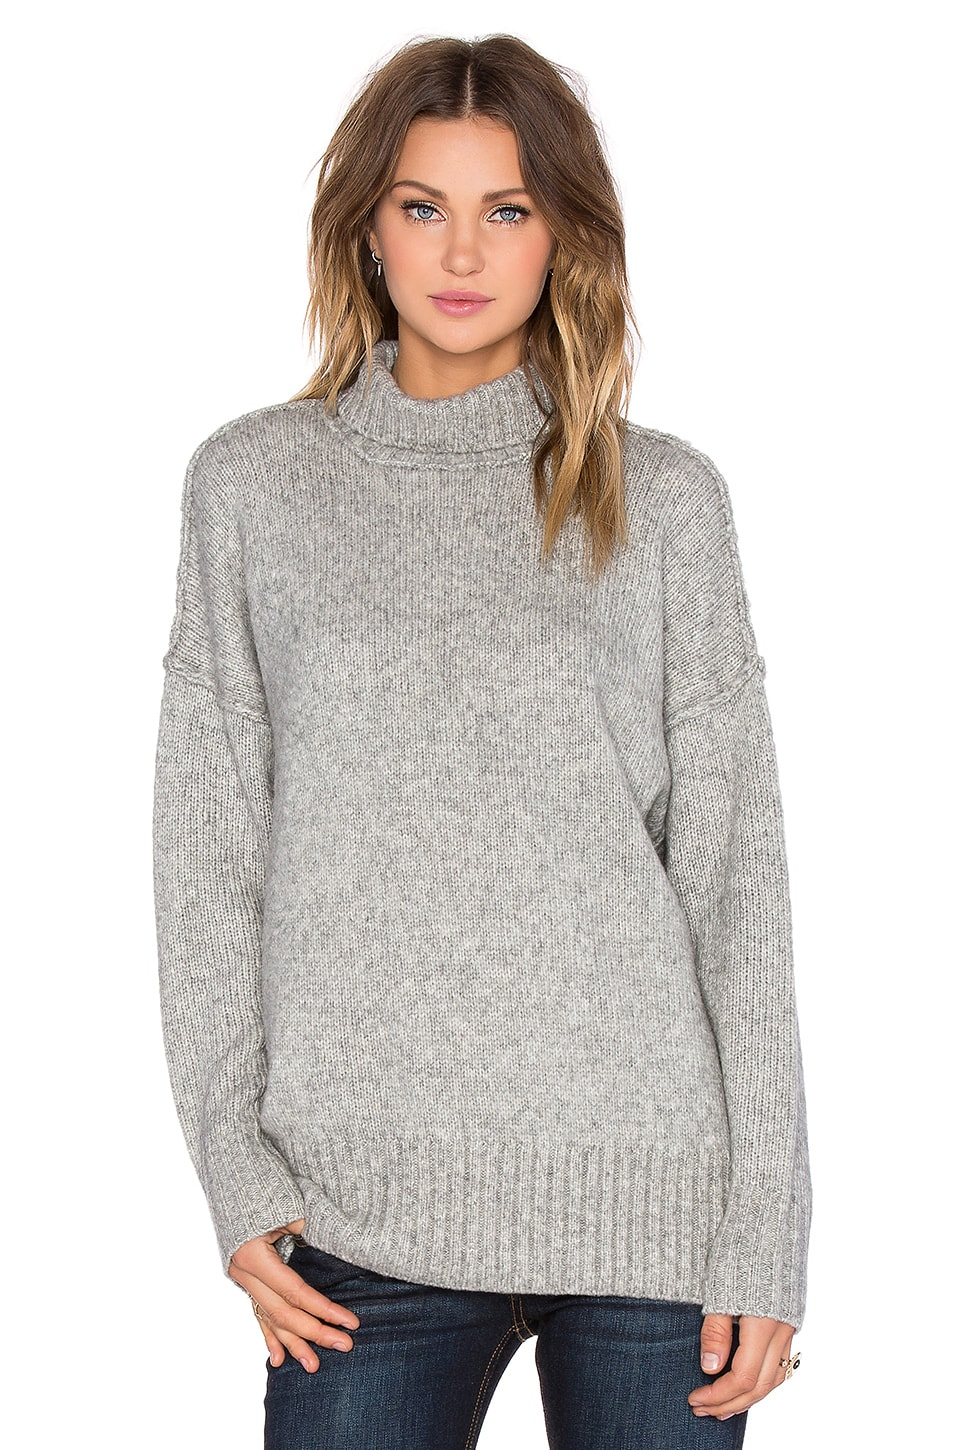 Where to buy oversized sweaters